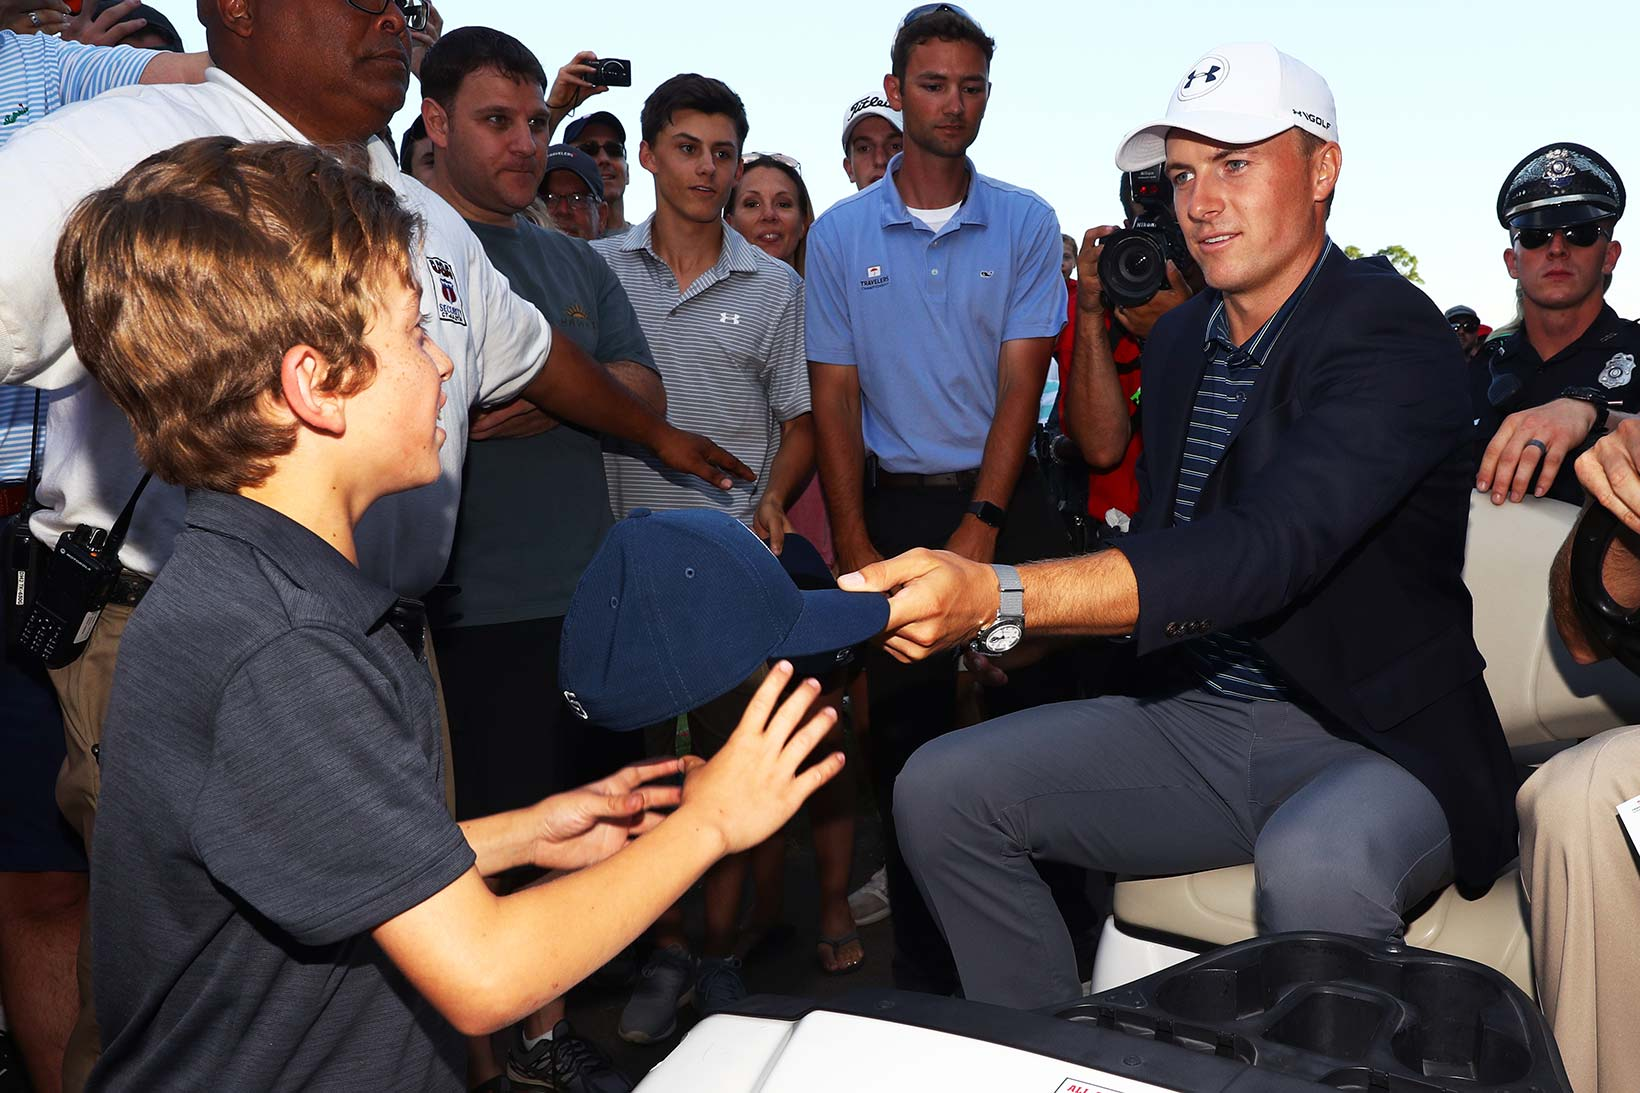 2017 Travelers Championship: Final Round - Still Time for Young Fans